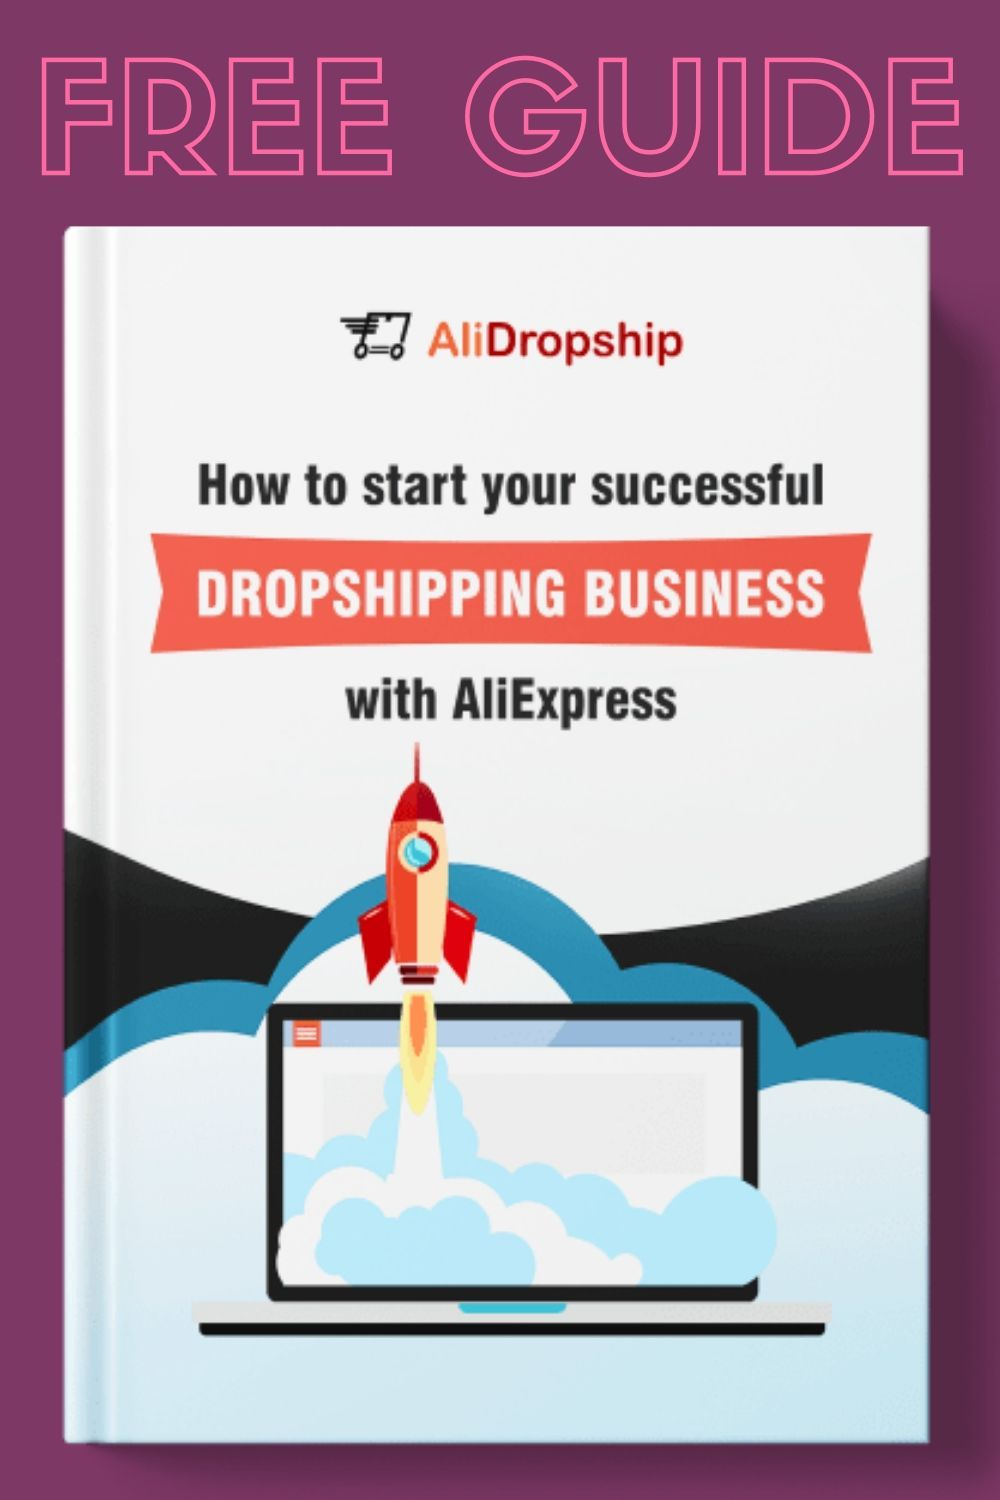 FREE GUIDE How to Start a Dropshipping Business with 9